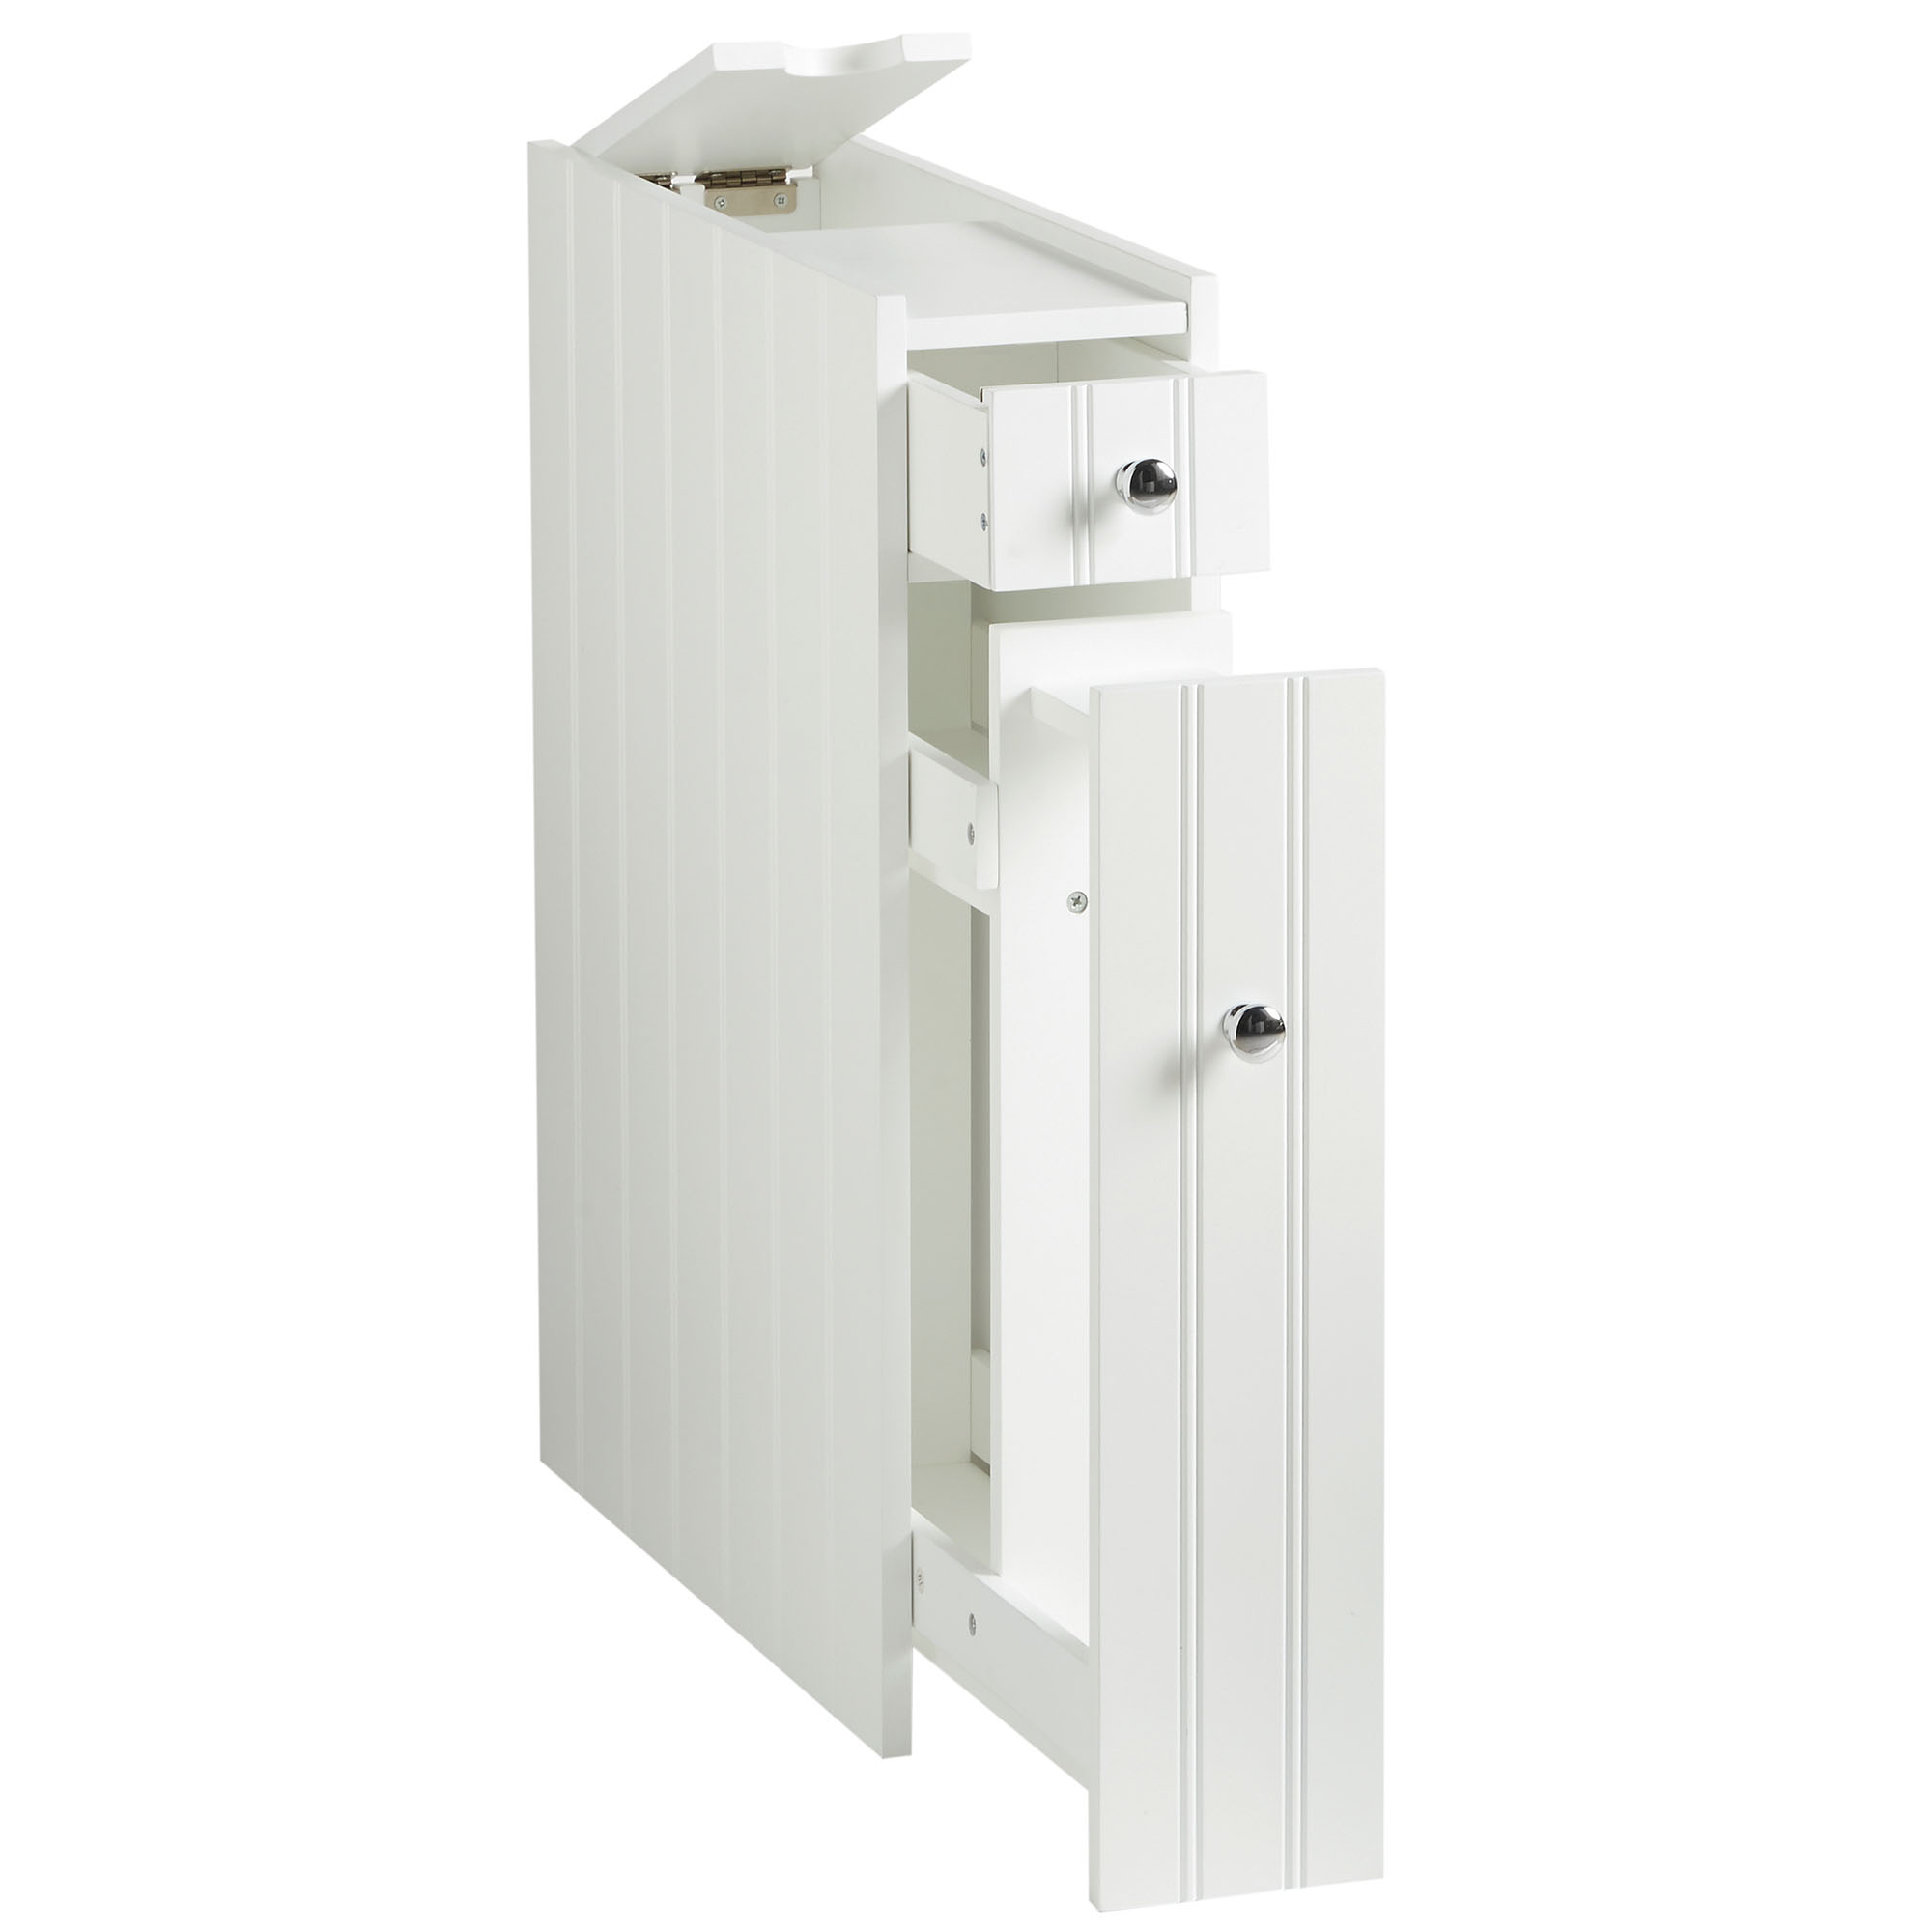 VonHaus Colonial Bathroom Slimline Unit Cupboard White Space Saving Cabinet 691166403943